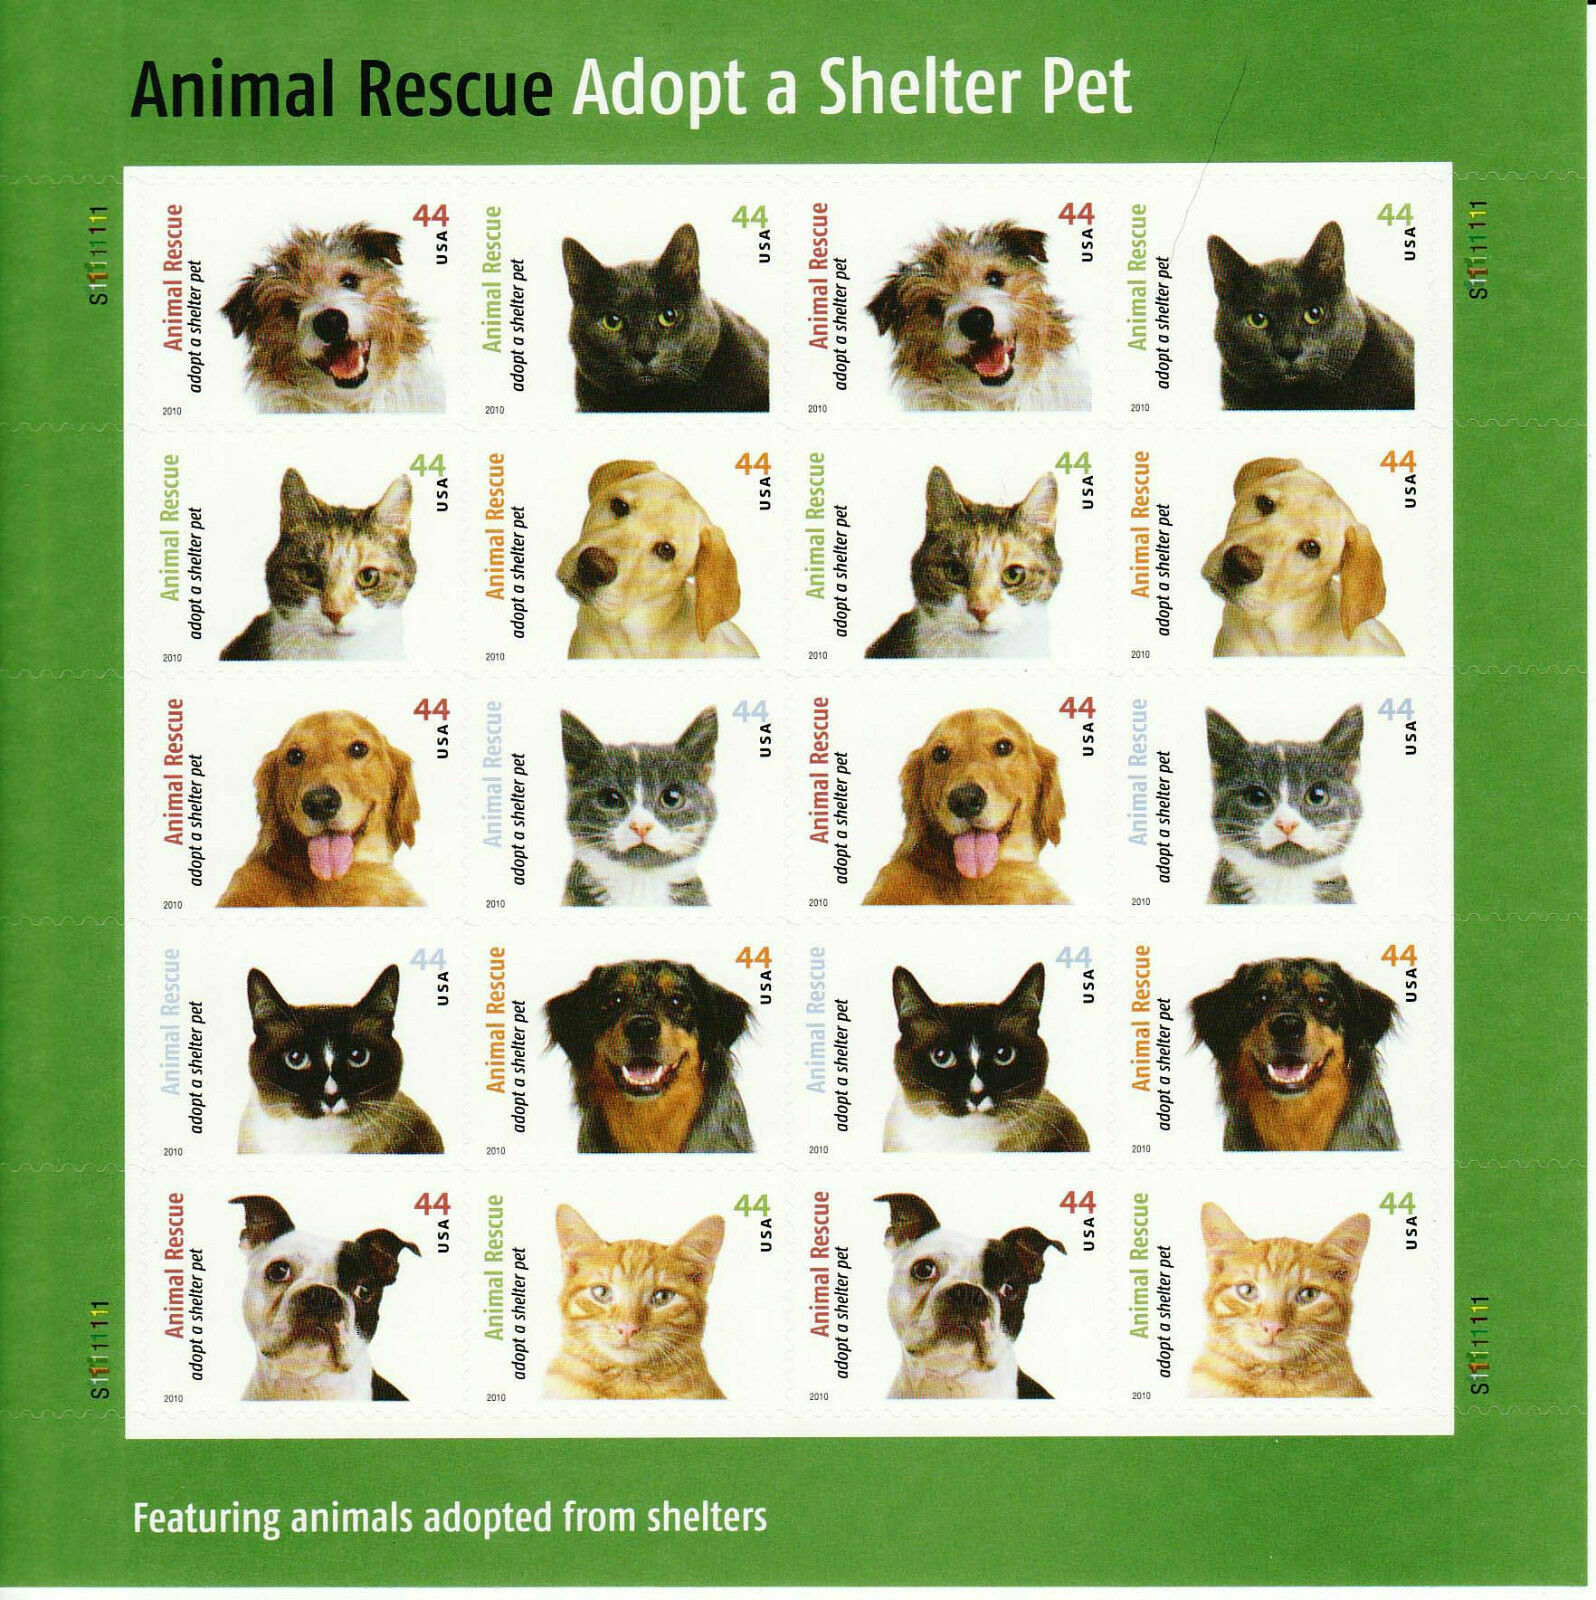 2010 44c Adopt a Shelter Pet, Sheet of 20 Scott 4451-60